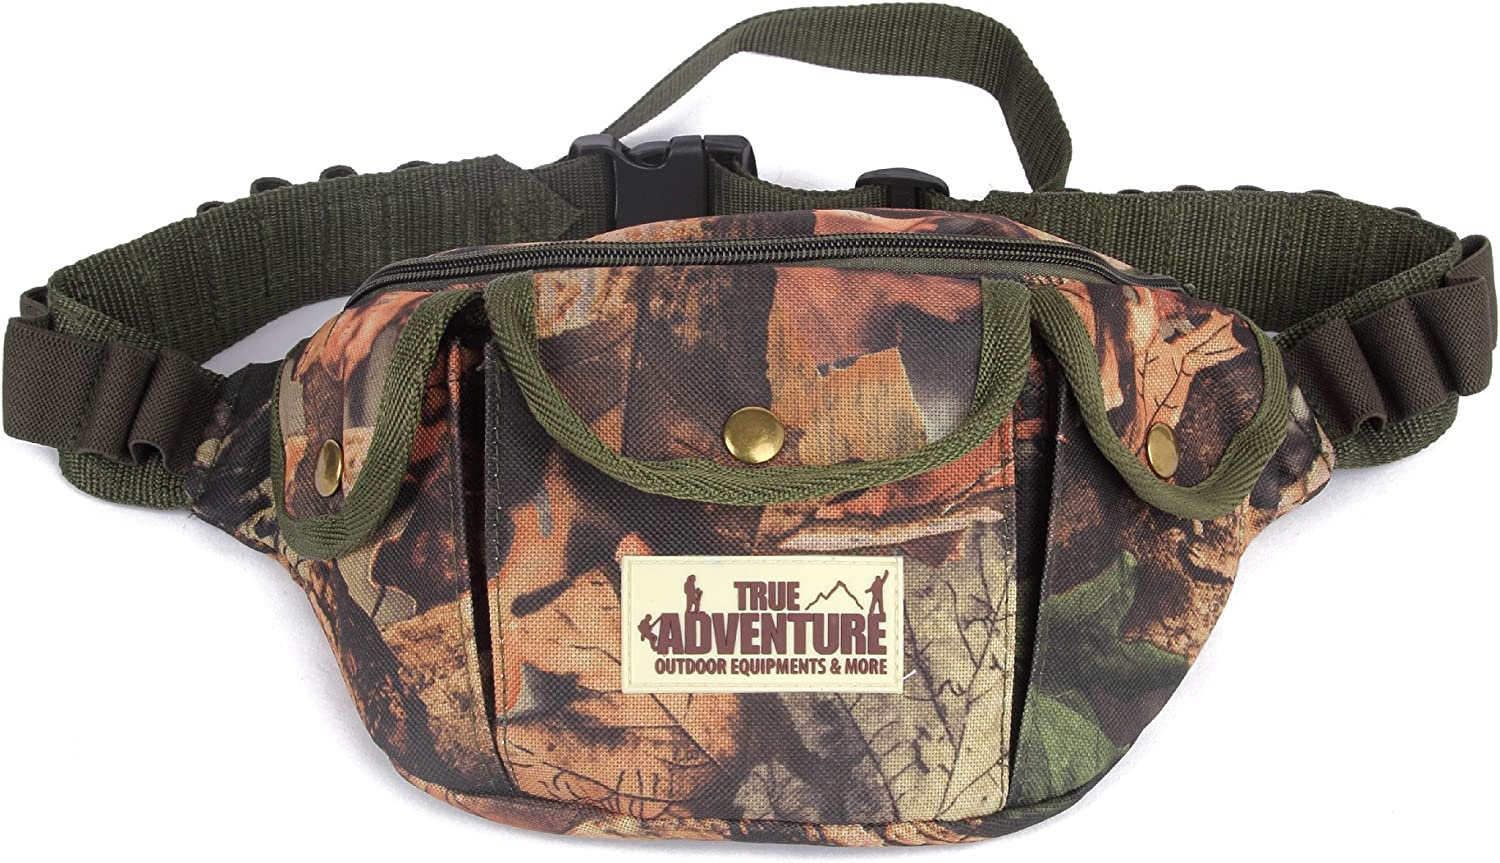 HITSAN True Adventure Hunting Multifunctional Tactical MultiPurpose Camouflage Bag Vest Utility Pack One Piece